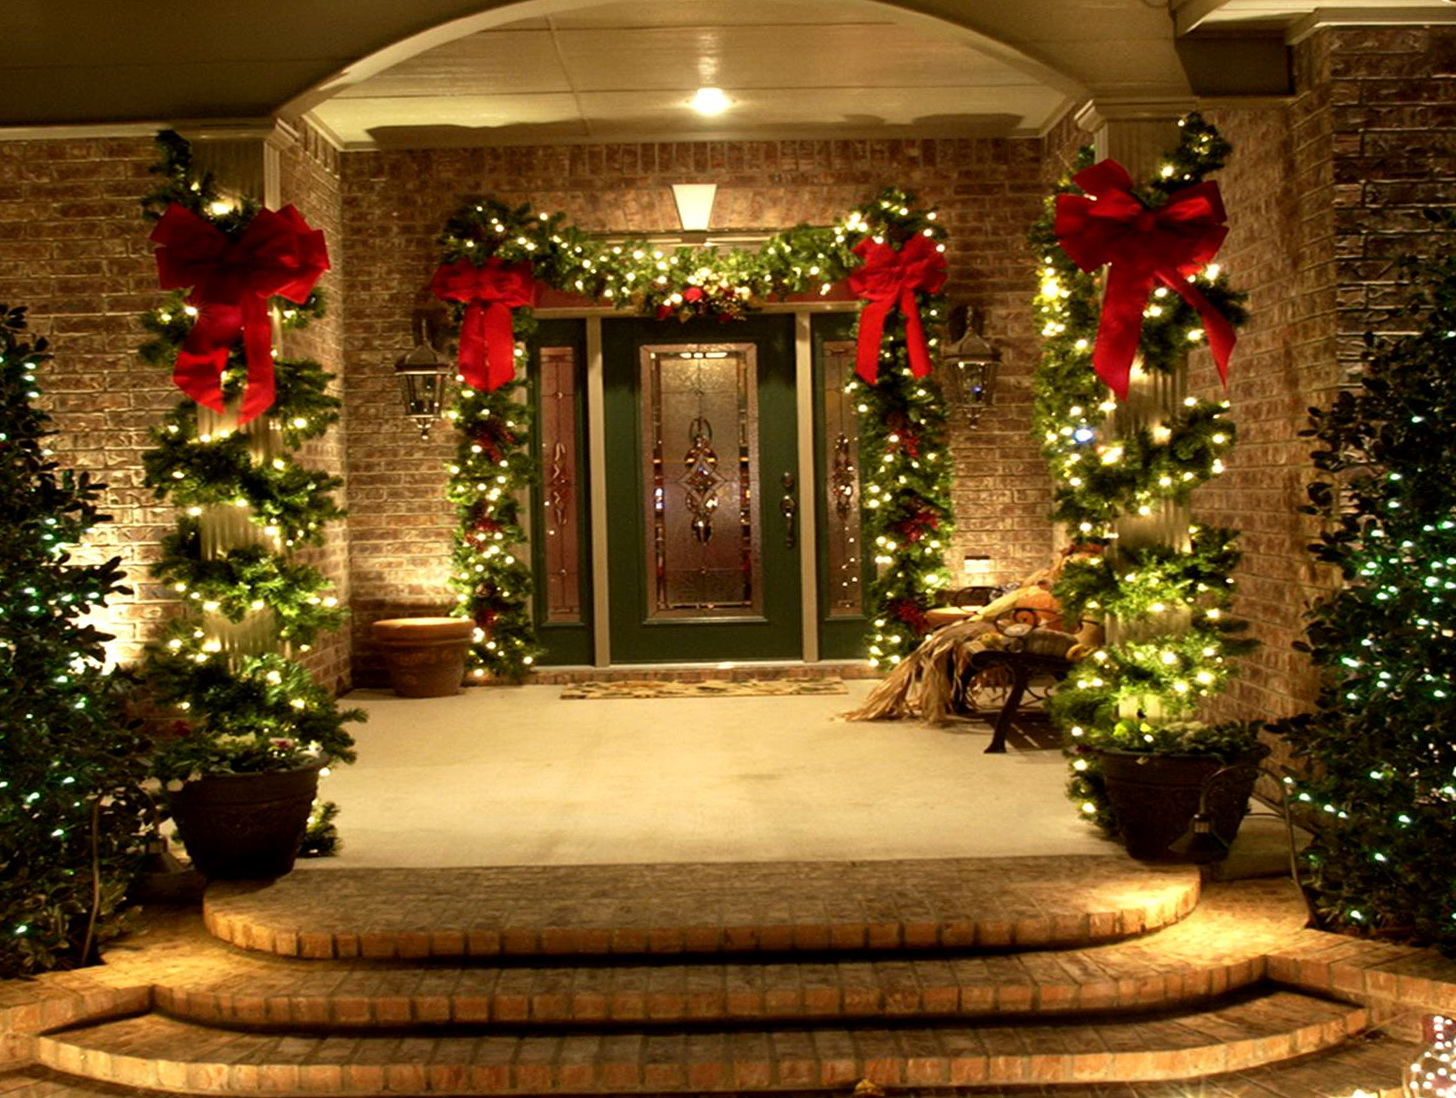 Christmas porch decorations uk home design ideas for Home christmas decorations uk